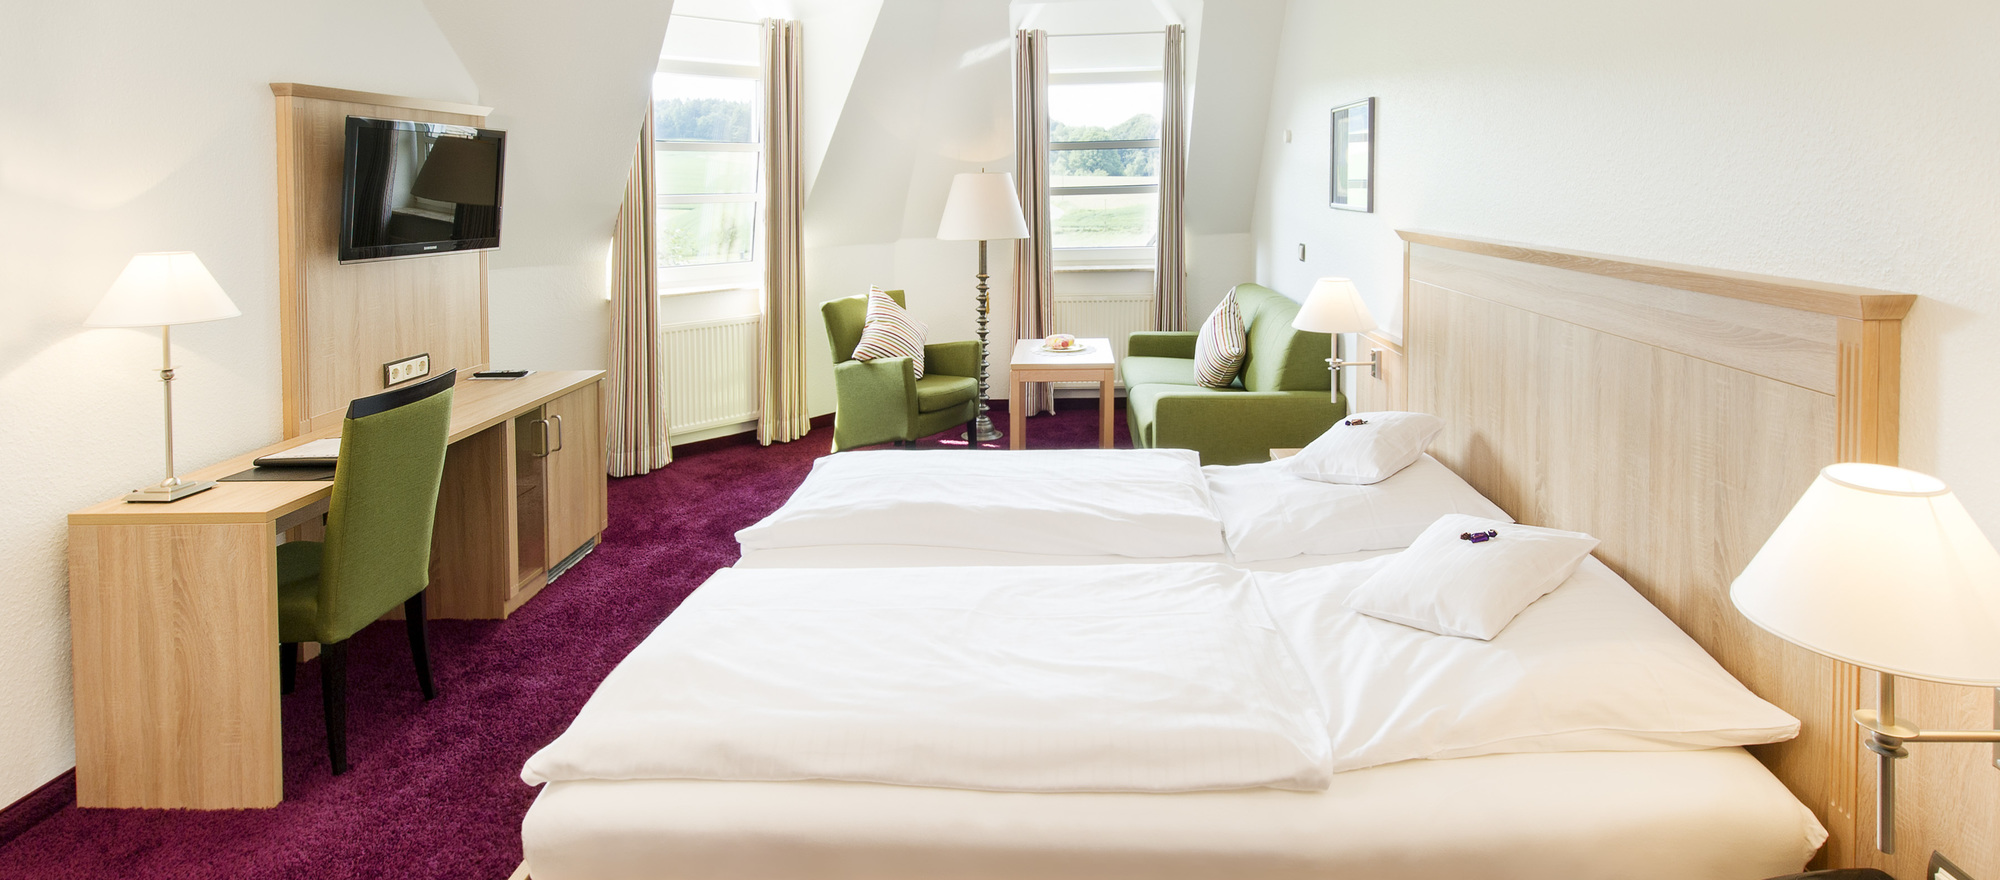 Book a room at the Ringhotel Landhotel Buller, 4-stars hotel in Hagen am Teutoburger Wald